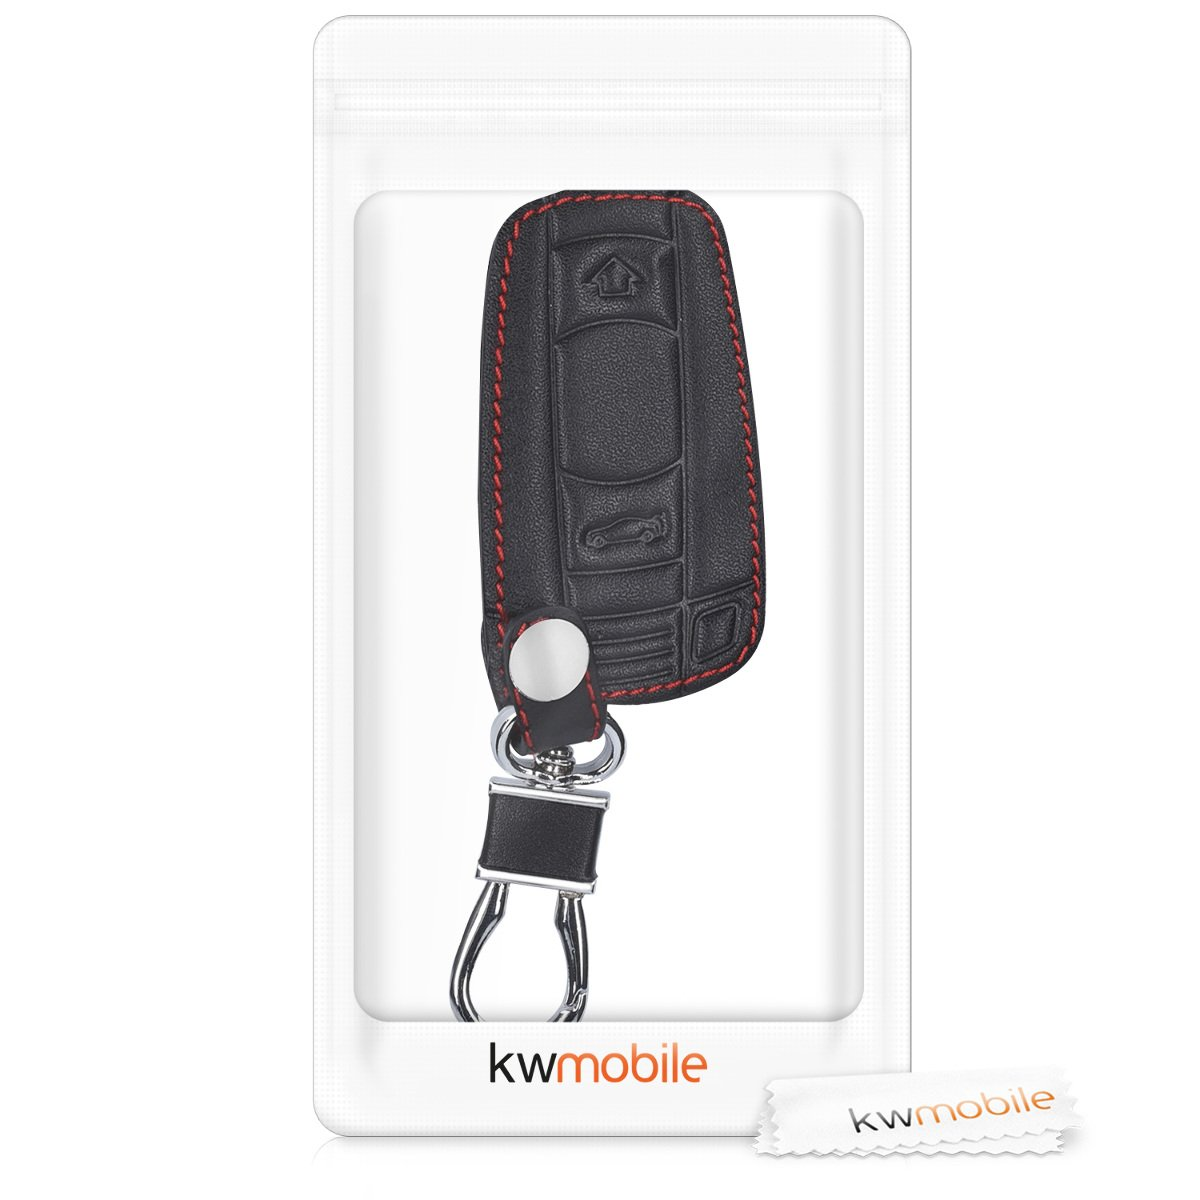 Heavy Duty PU Leather Protective Key Fob Cover for BMW 3 Button Car Key - Black only Keyless Go kwmobile Car Key Cover for BMW